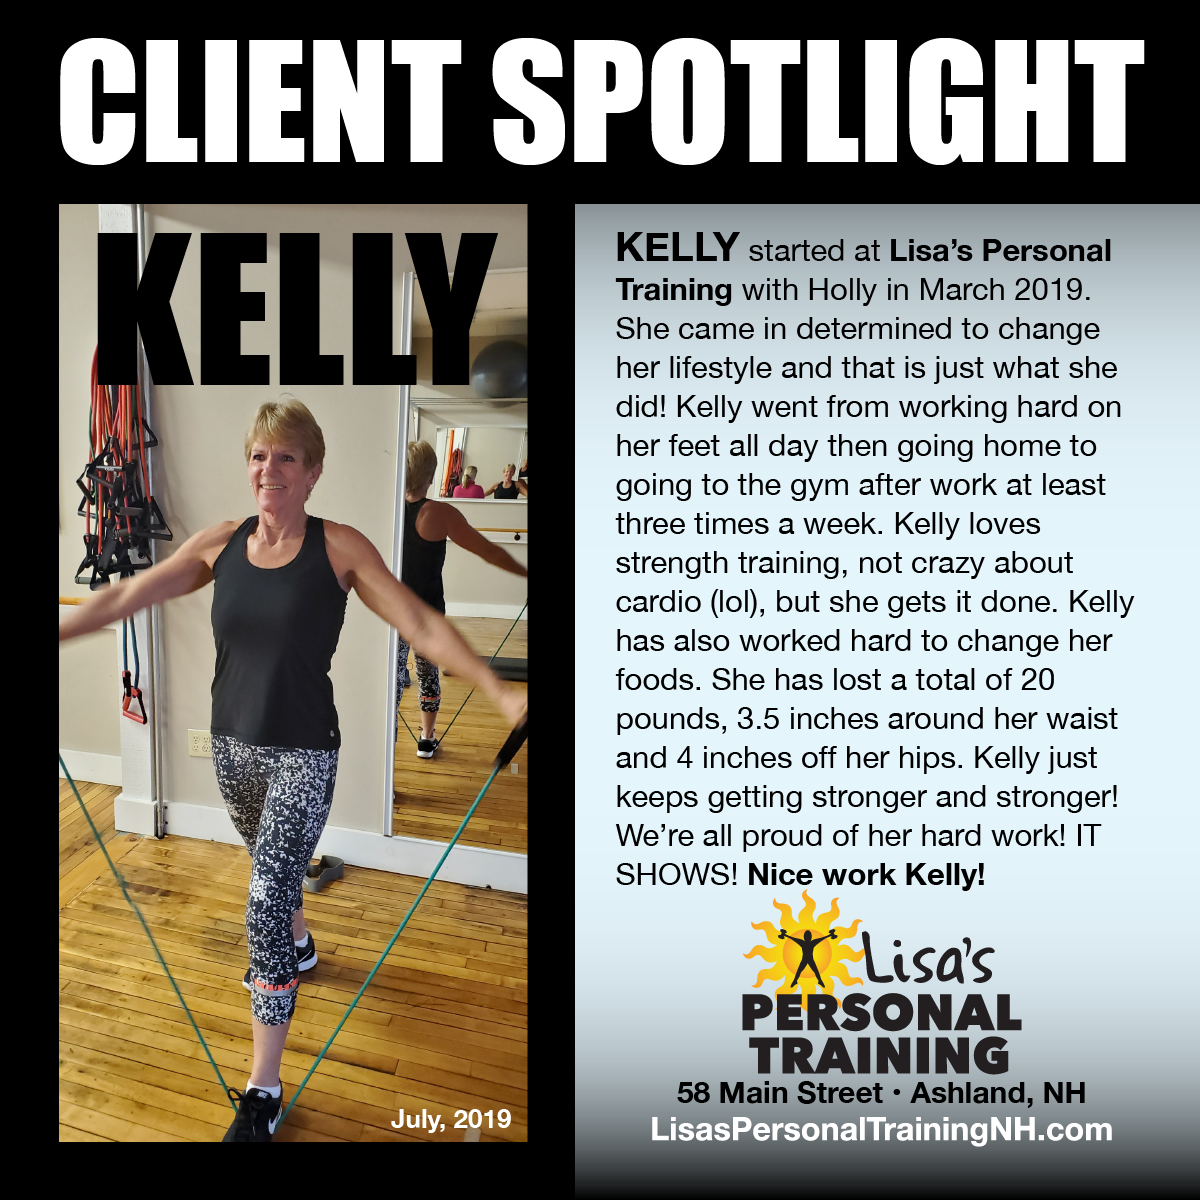 Kelly at Lisa's Personal Training